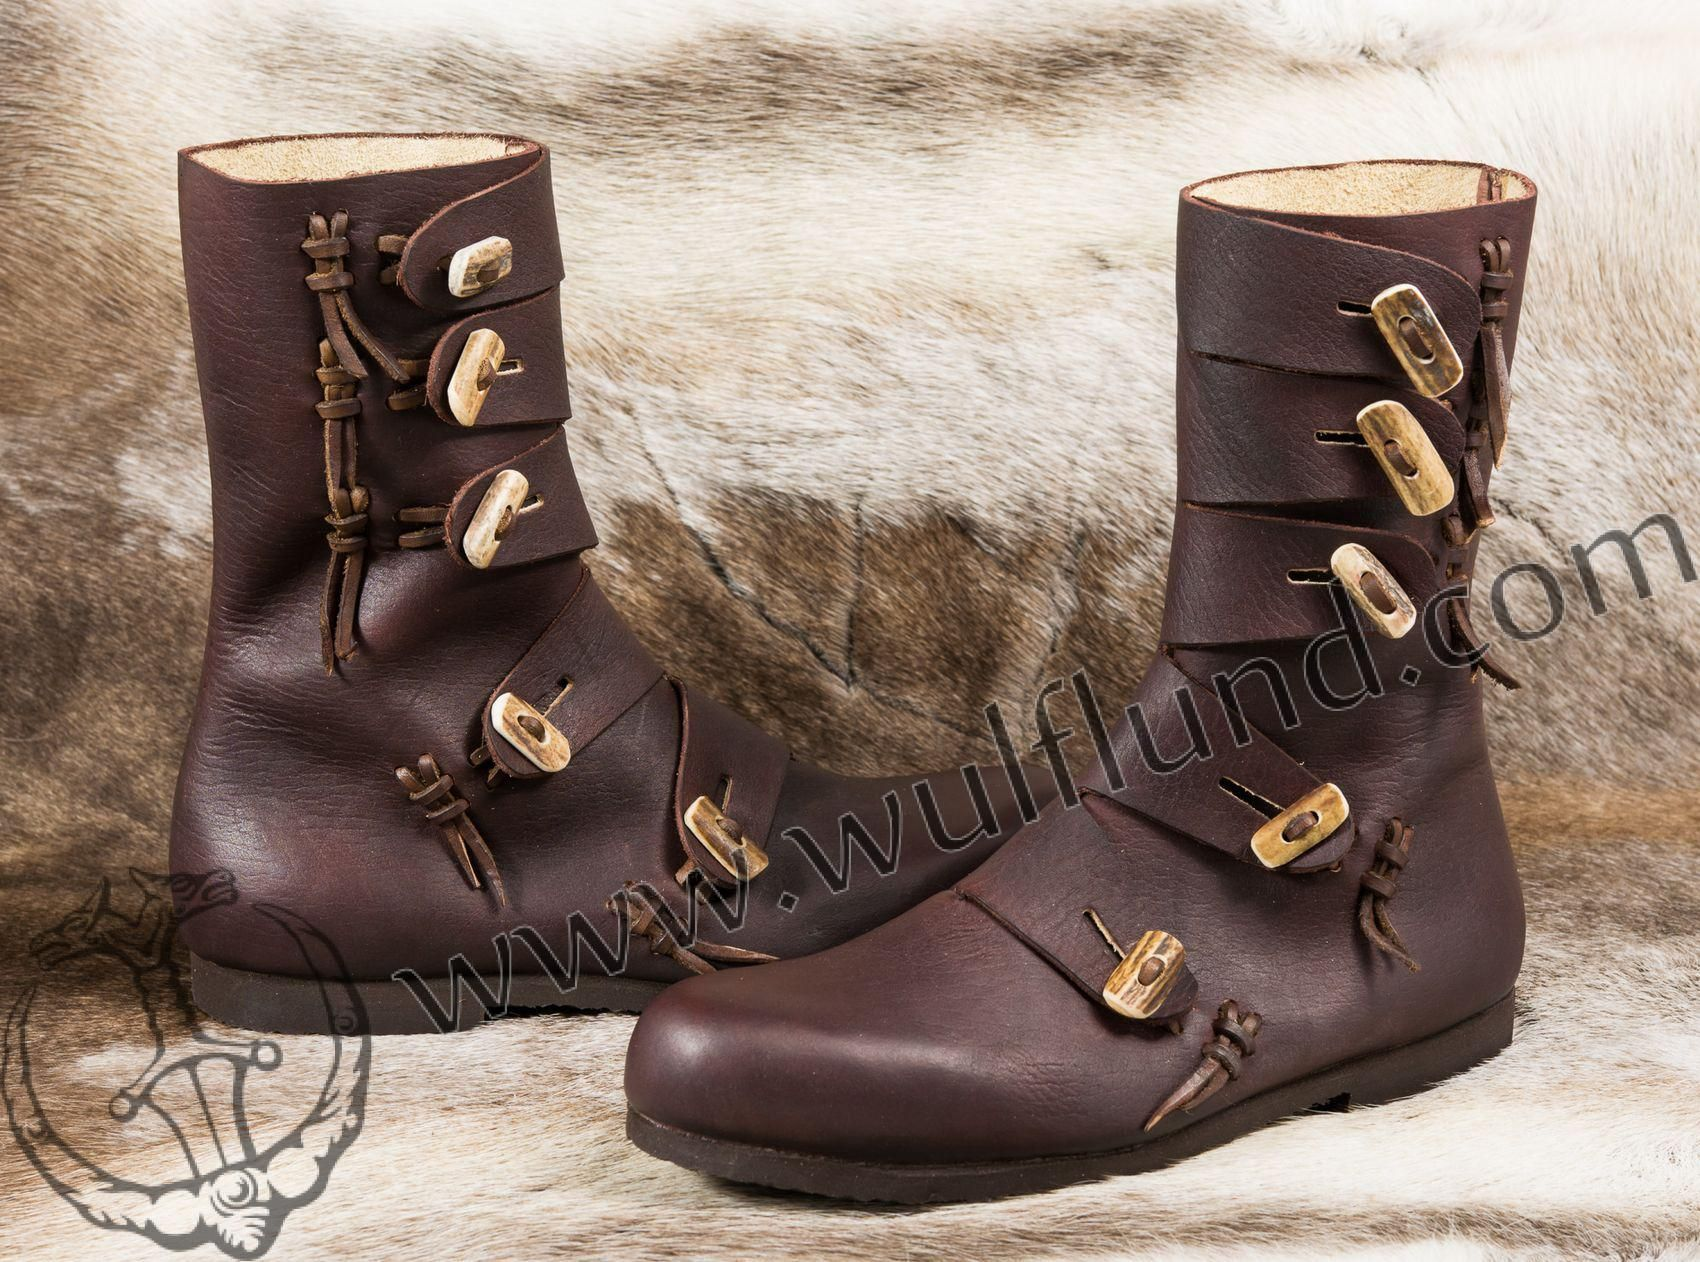 leather Early bootsWulflundCostume leather bootsWulflundCostume medieval Early medieval medieval Early hCtsQdxr